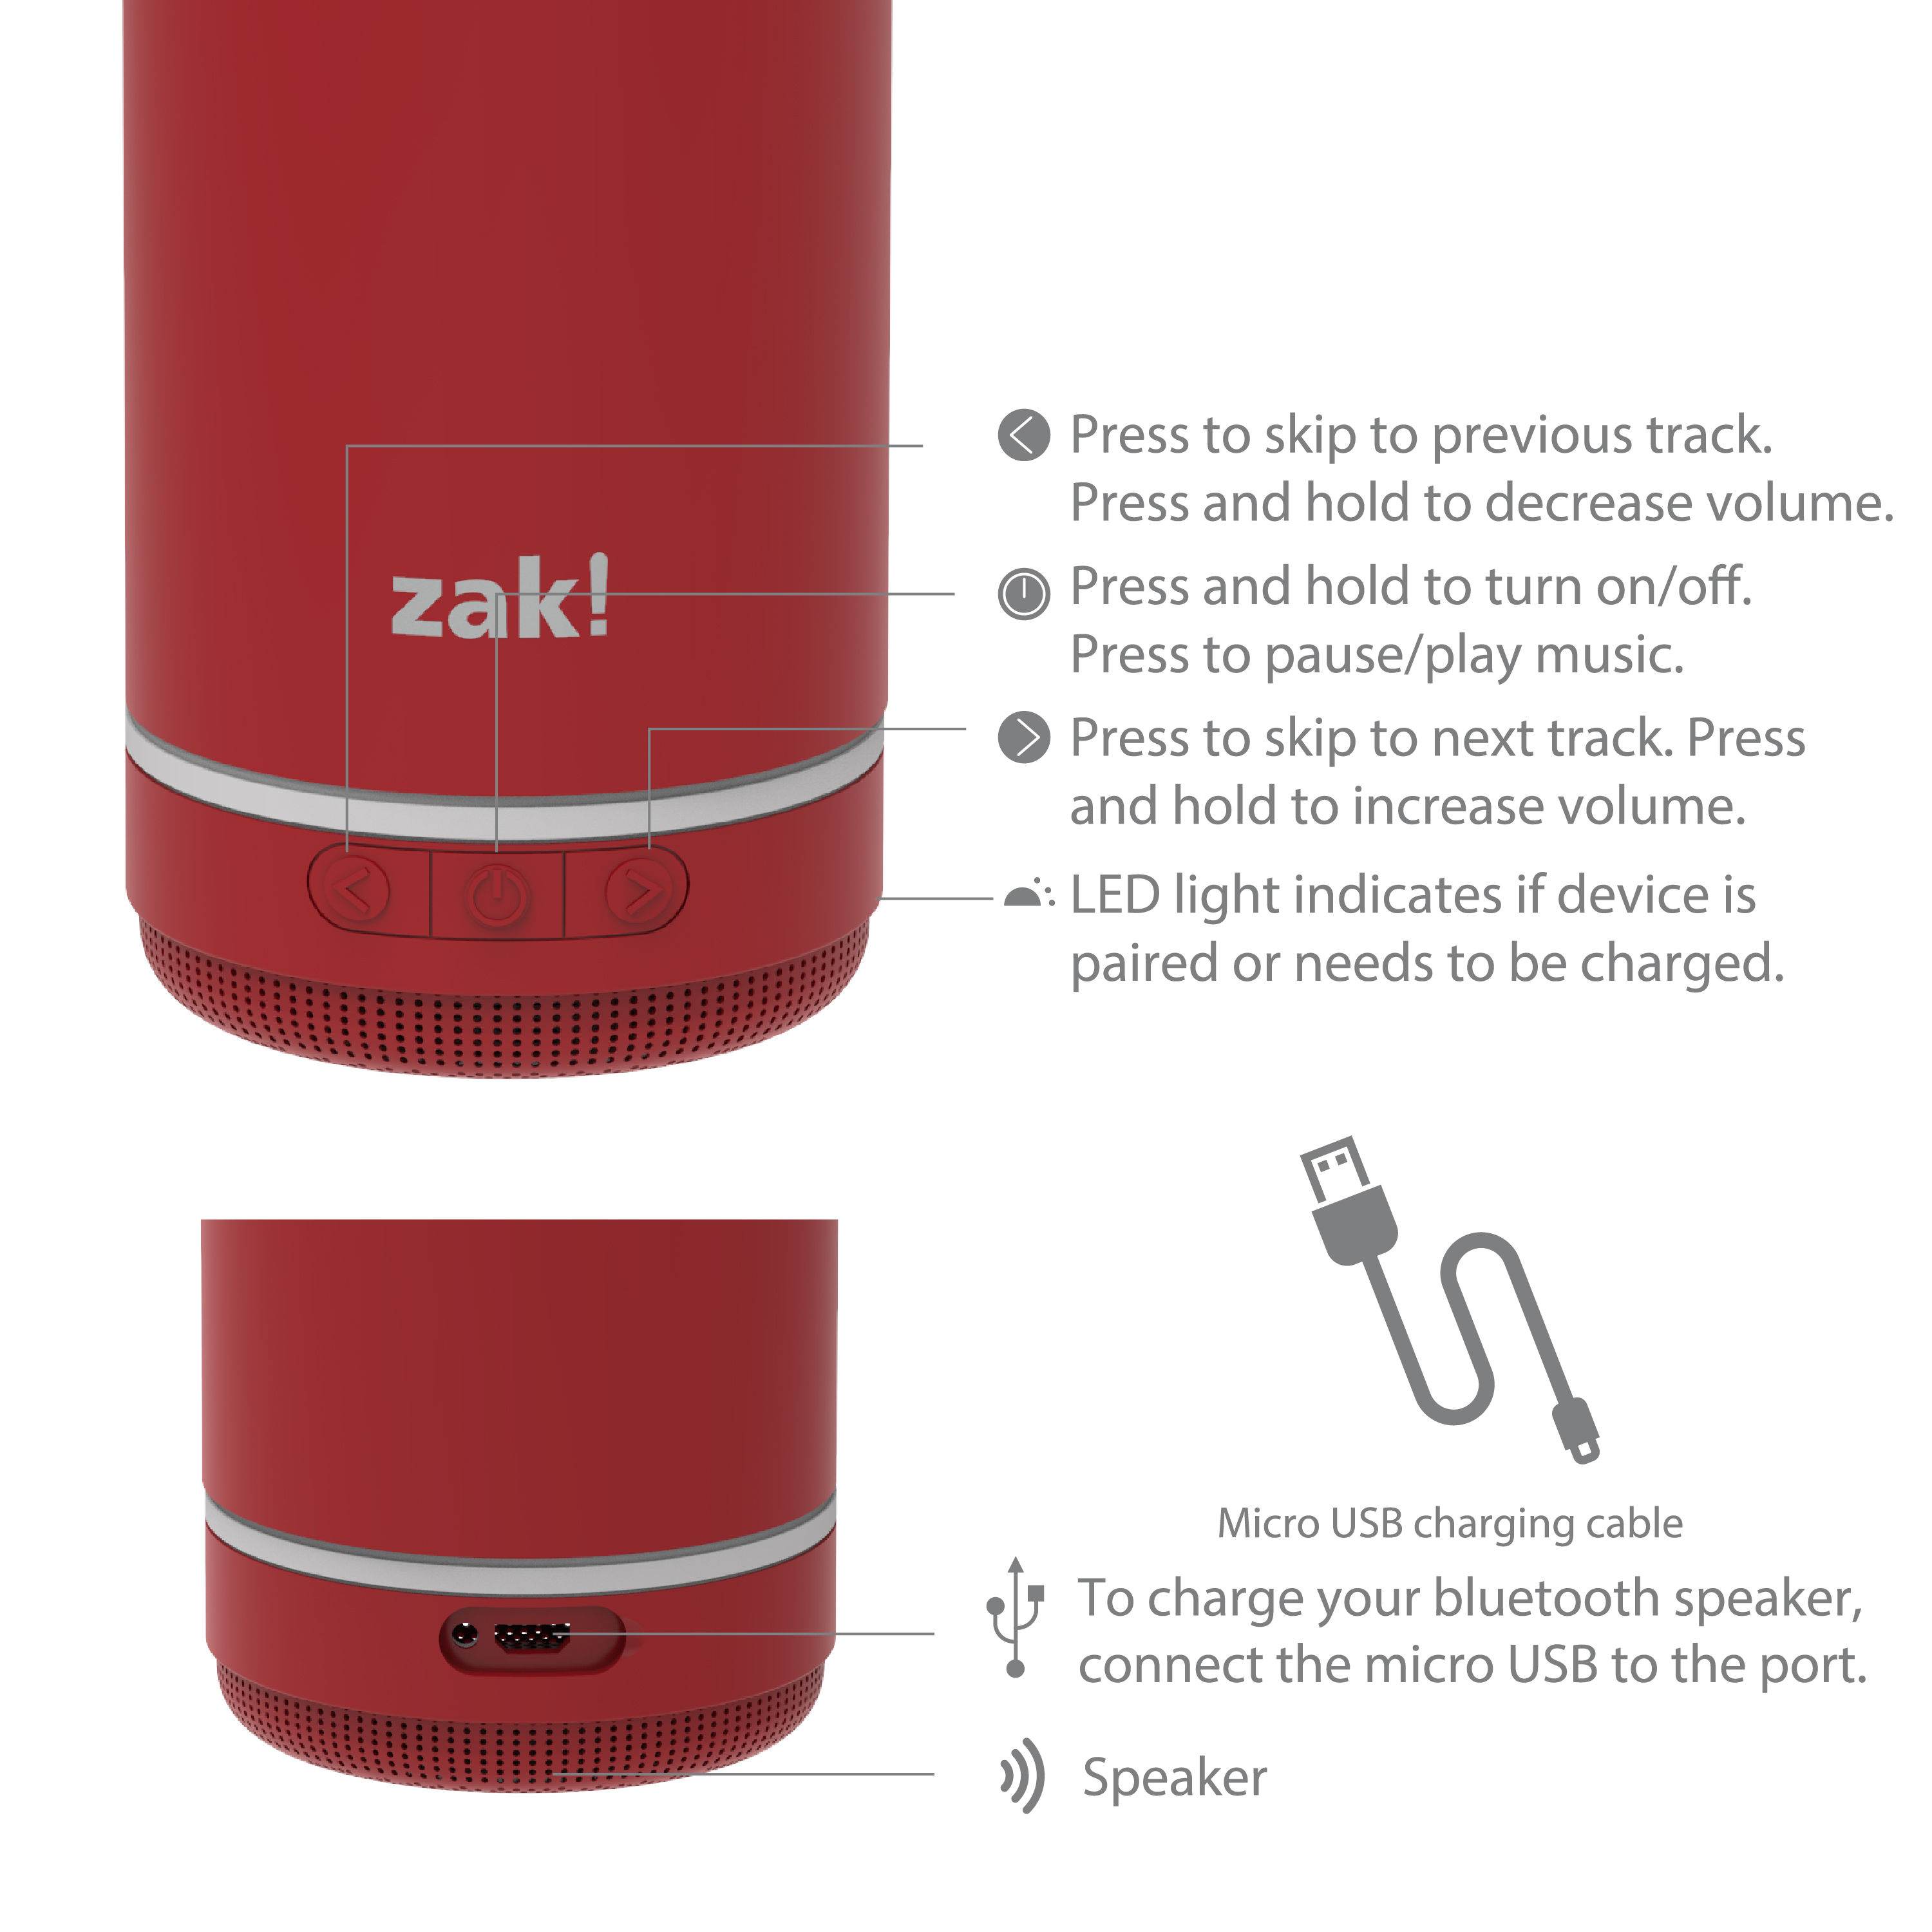 Zak Play 18 ounce Stainless Steel Tumbler with Bluetooth Speaker, Red slideshow image 10